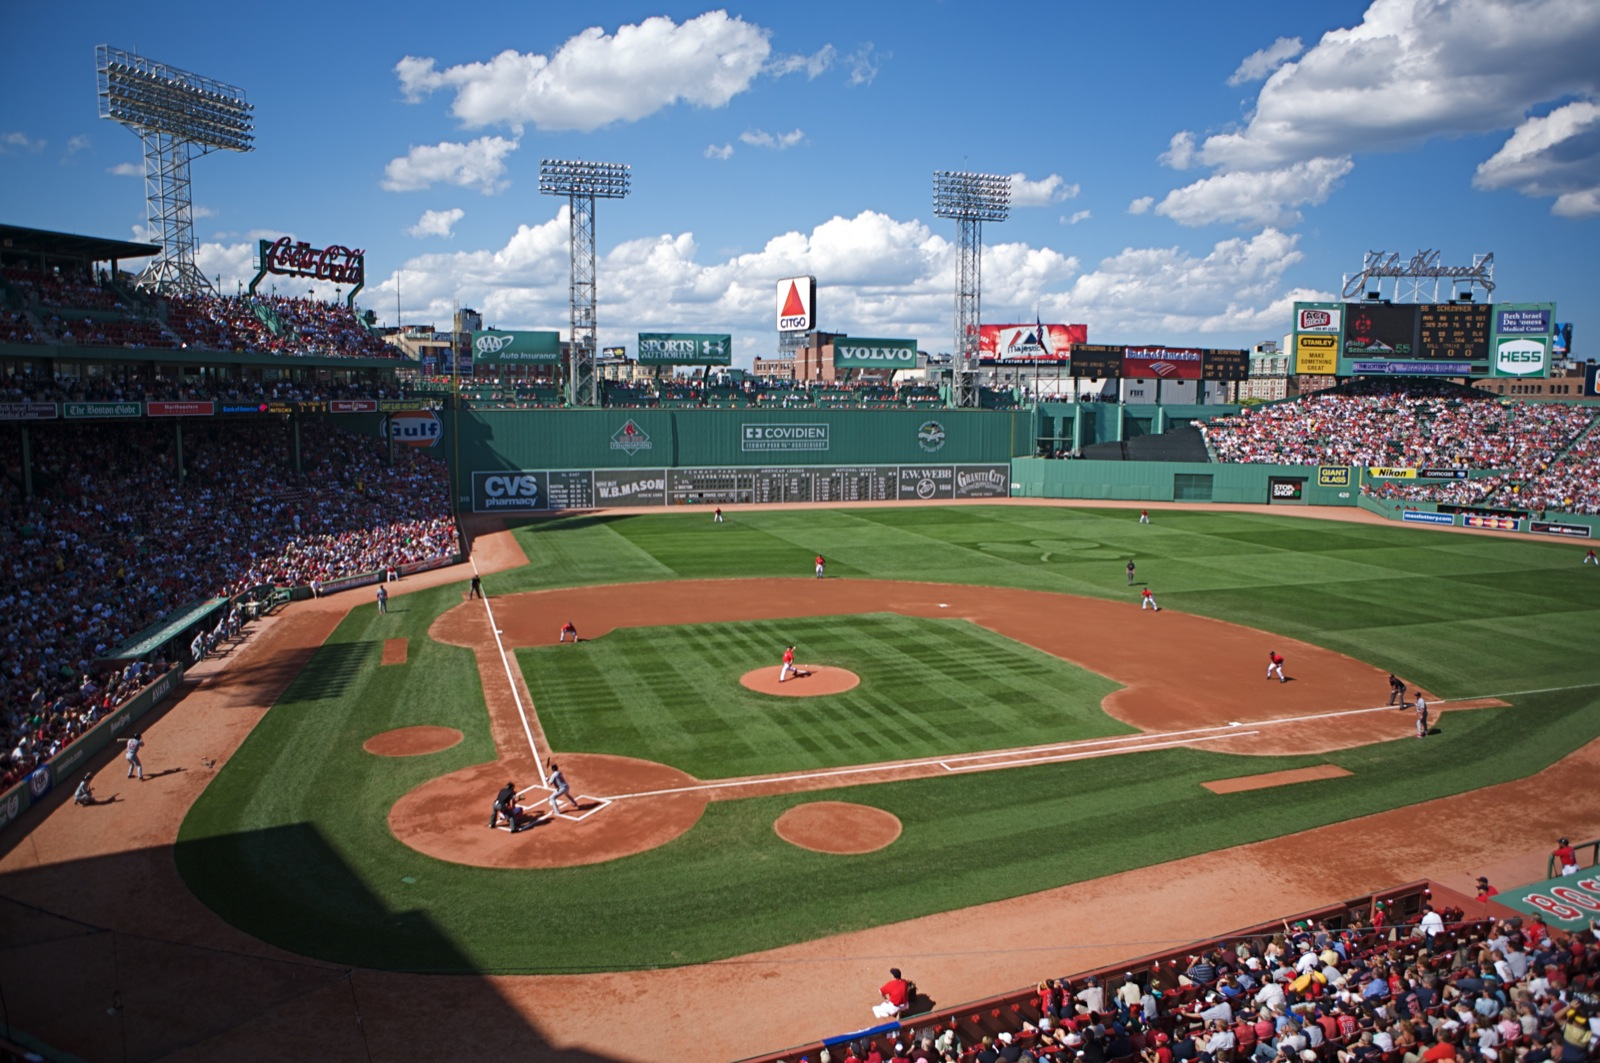 The famed green monster is the left field fence it is the oldest active ballpark in major league baseball